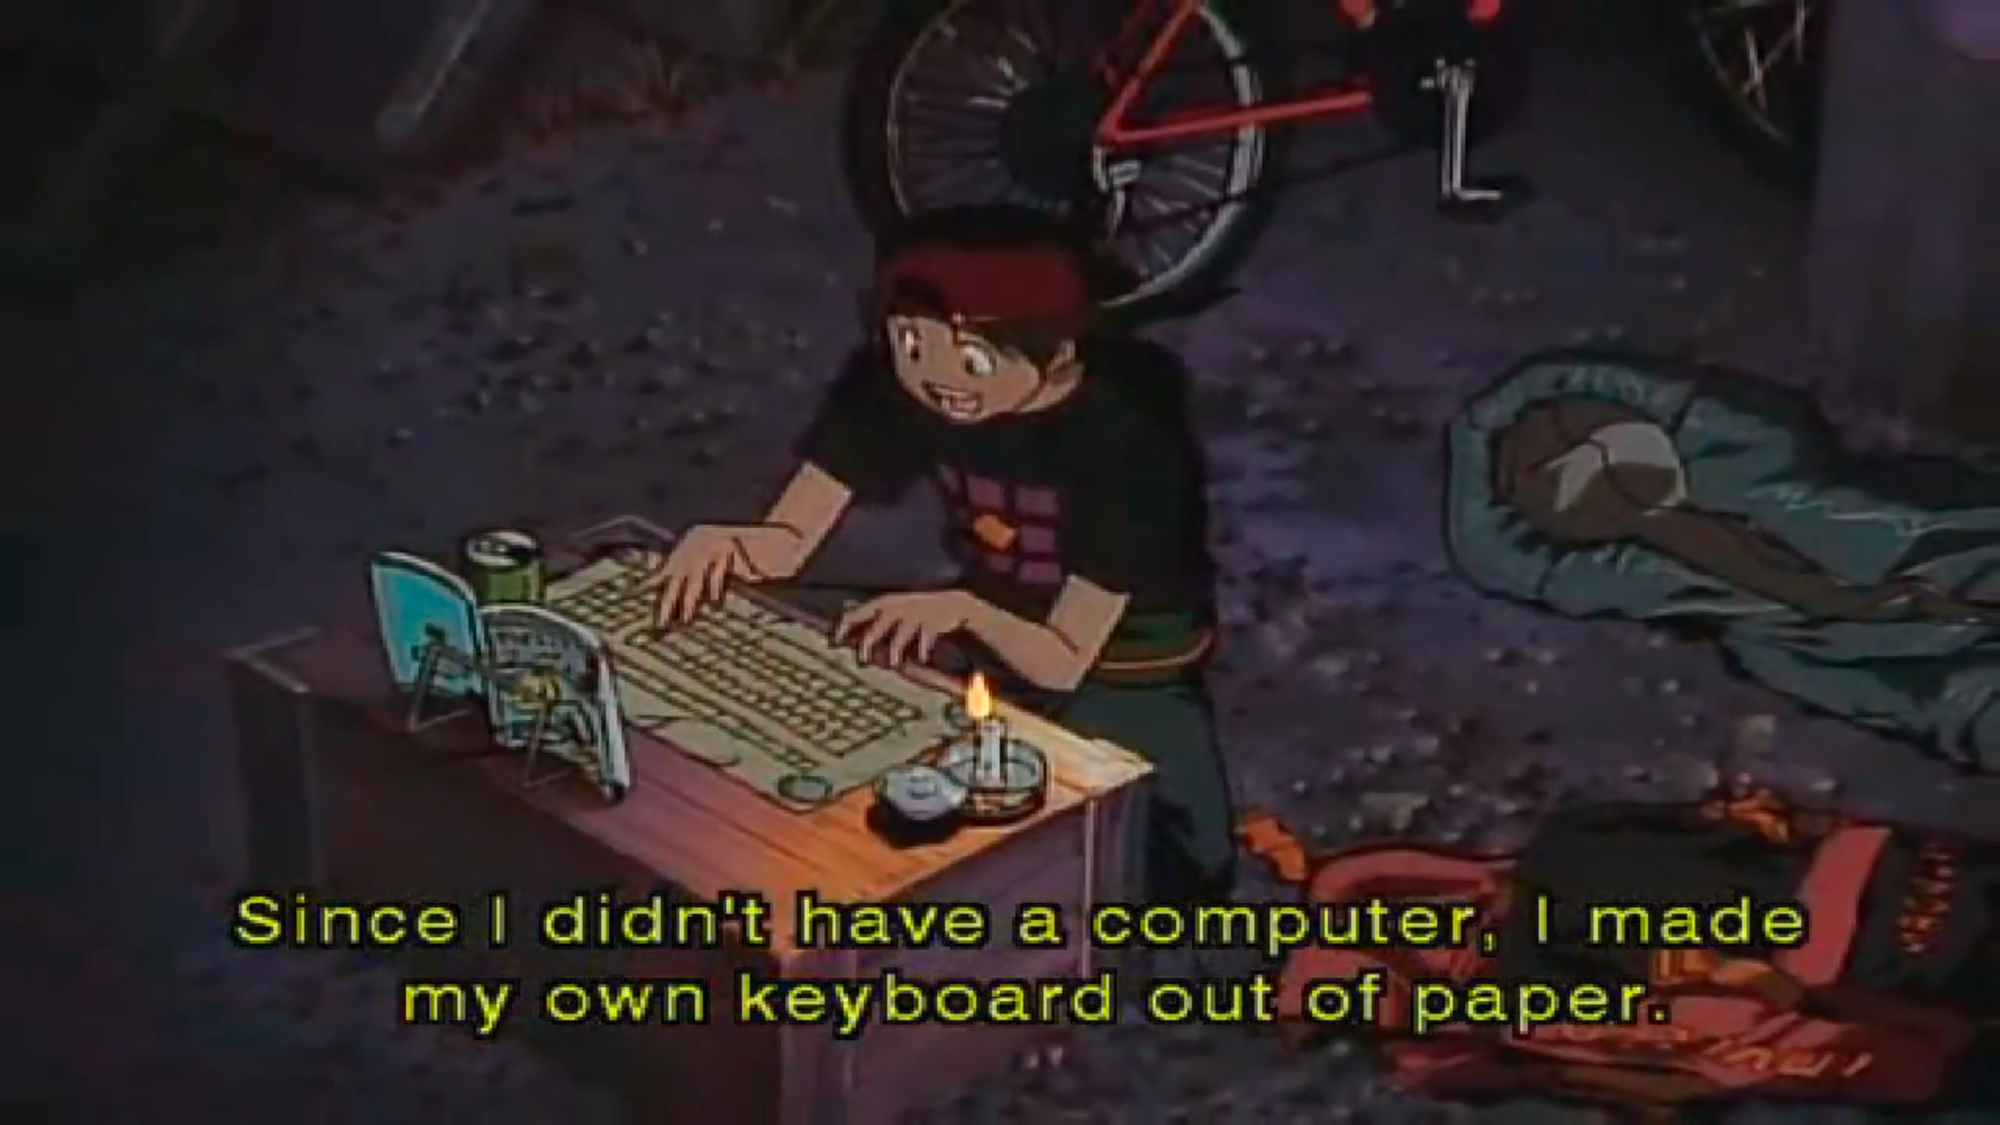 kintaro-since-i-did-not-have-a-computer-2